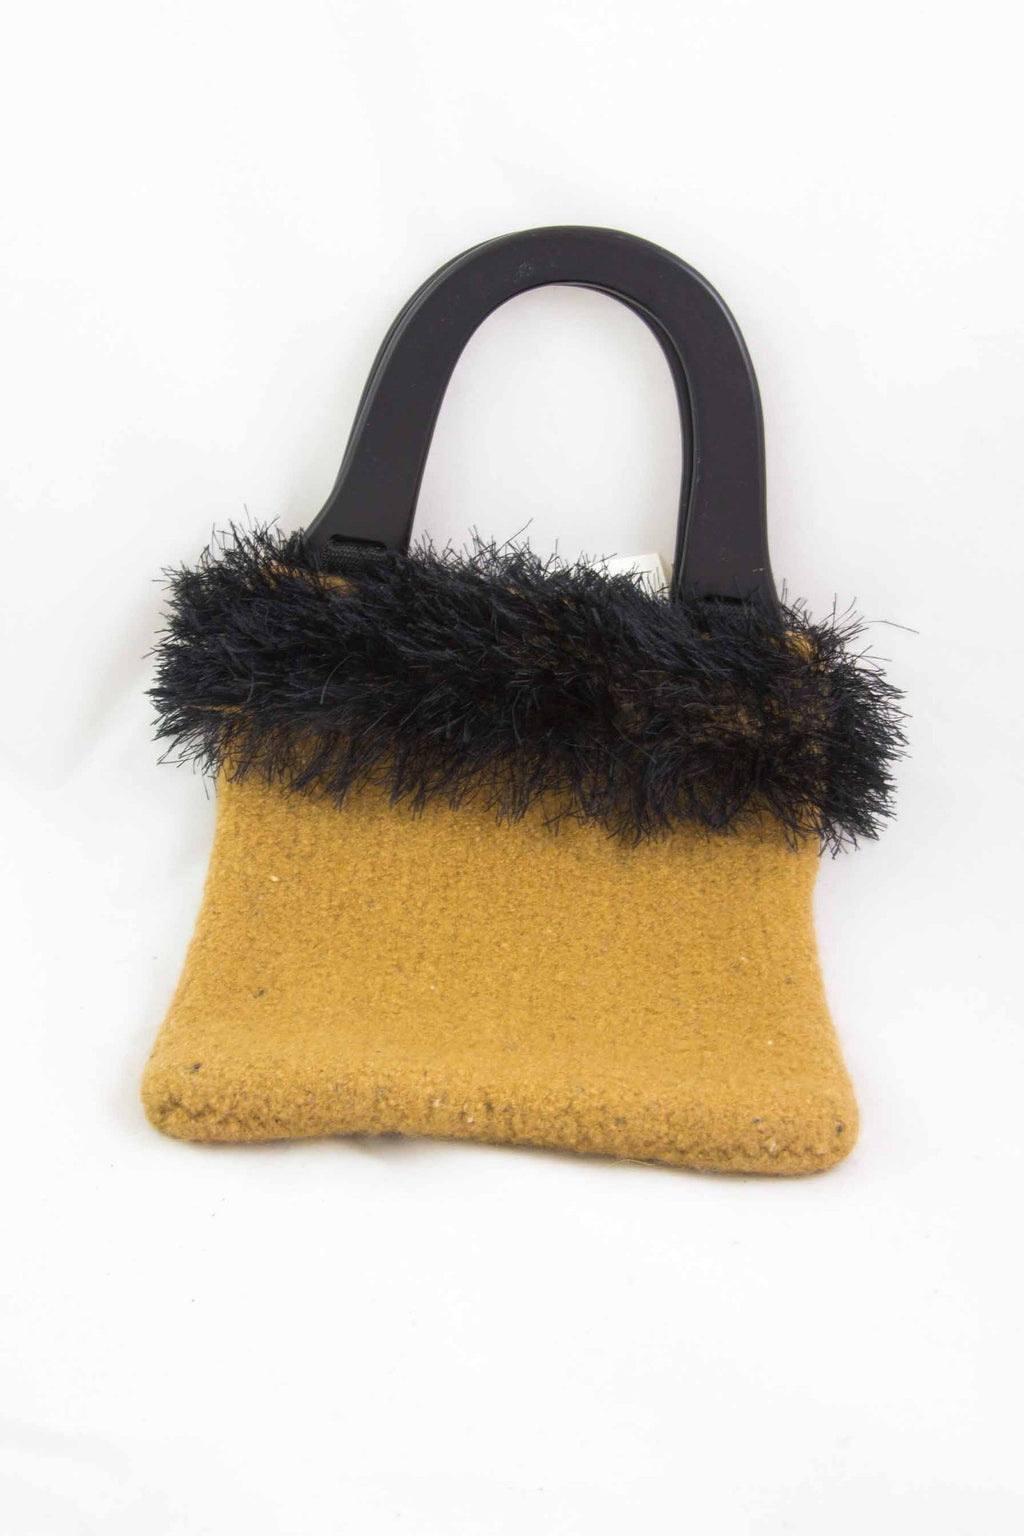 Hand Knitted & Felted Purse by Marsha R. Maupin